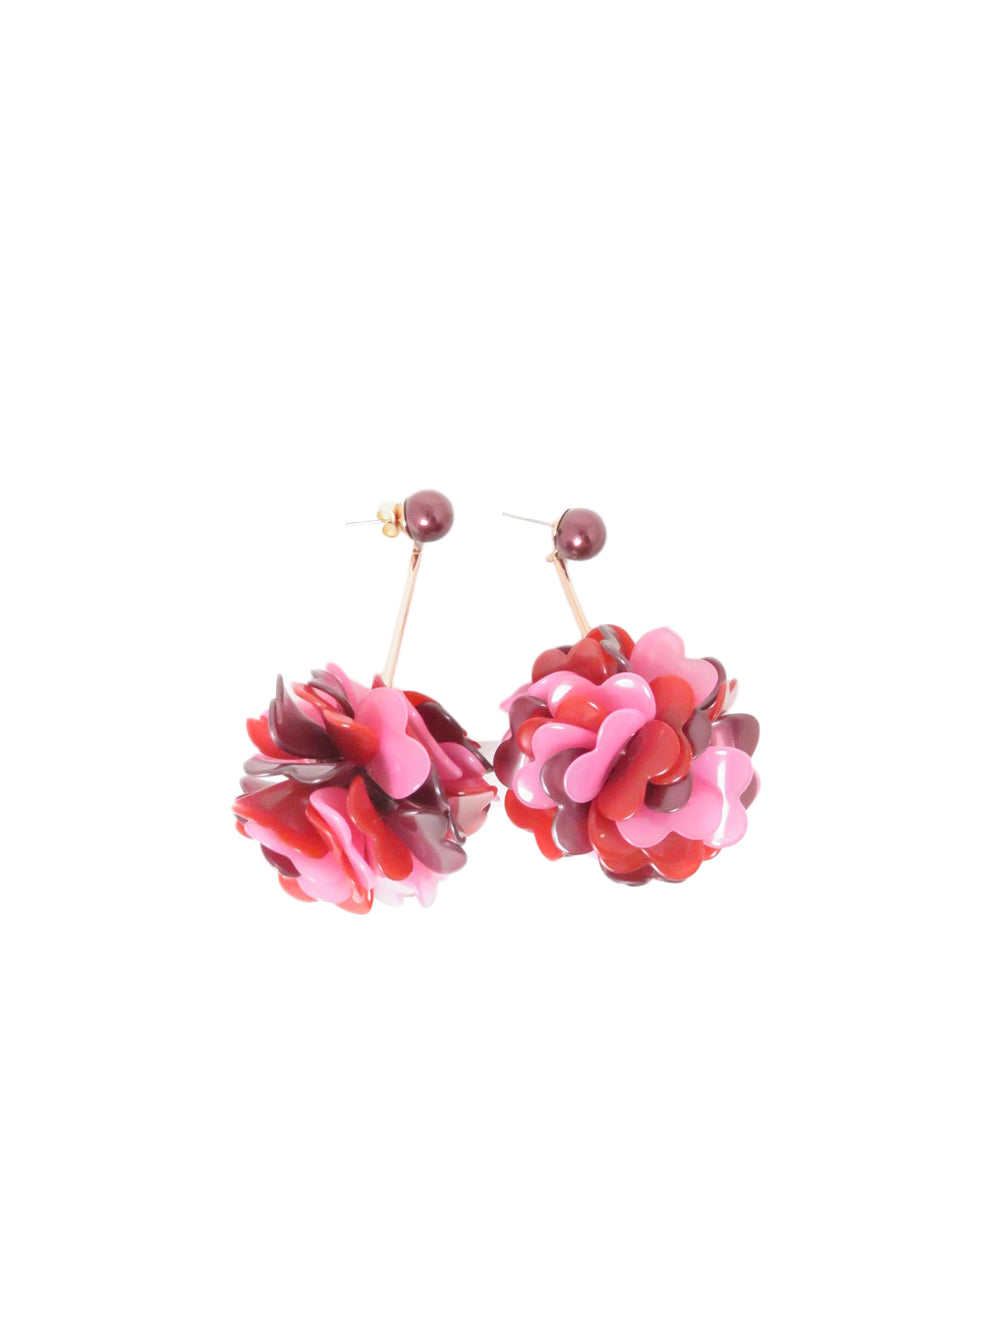 unlabeled flower drop earings in purples. features large ball of floral design heart shaped petals. note one earring back is missing